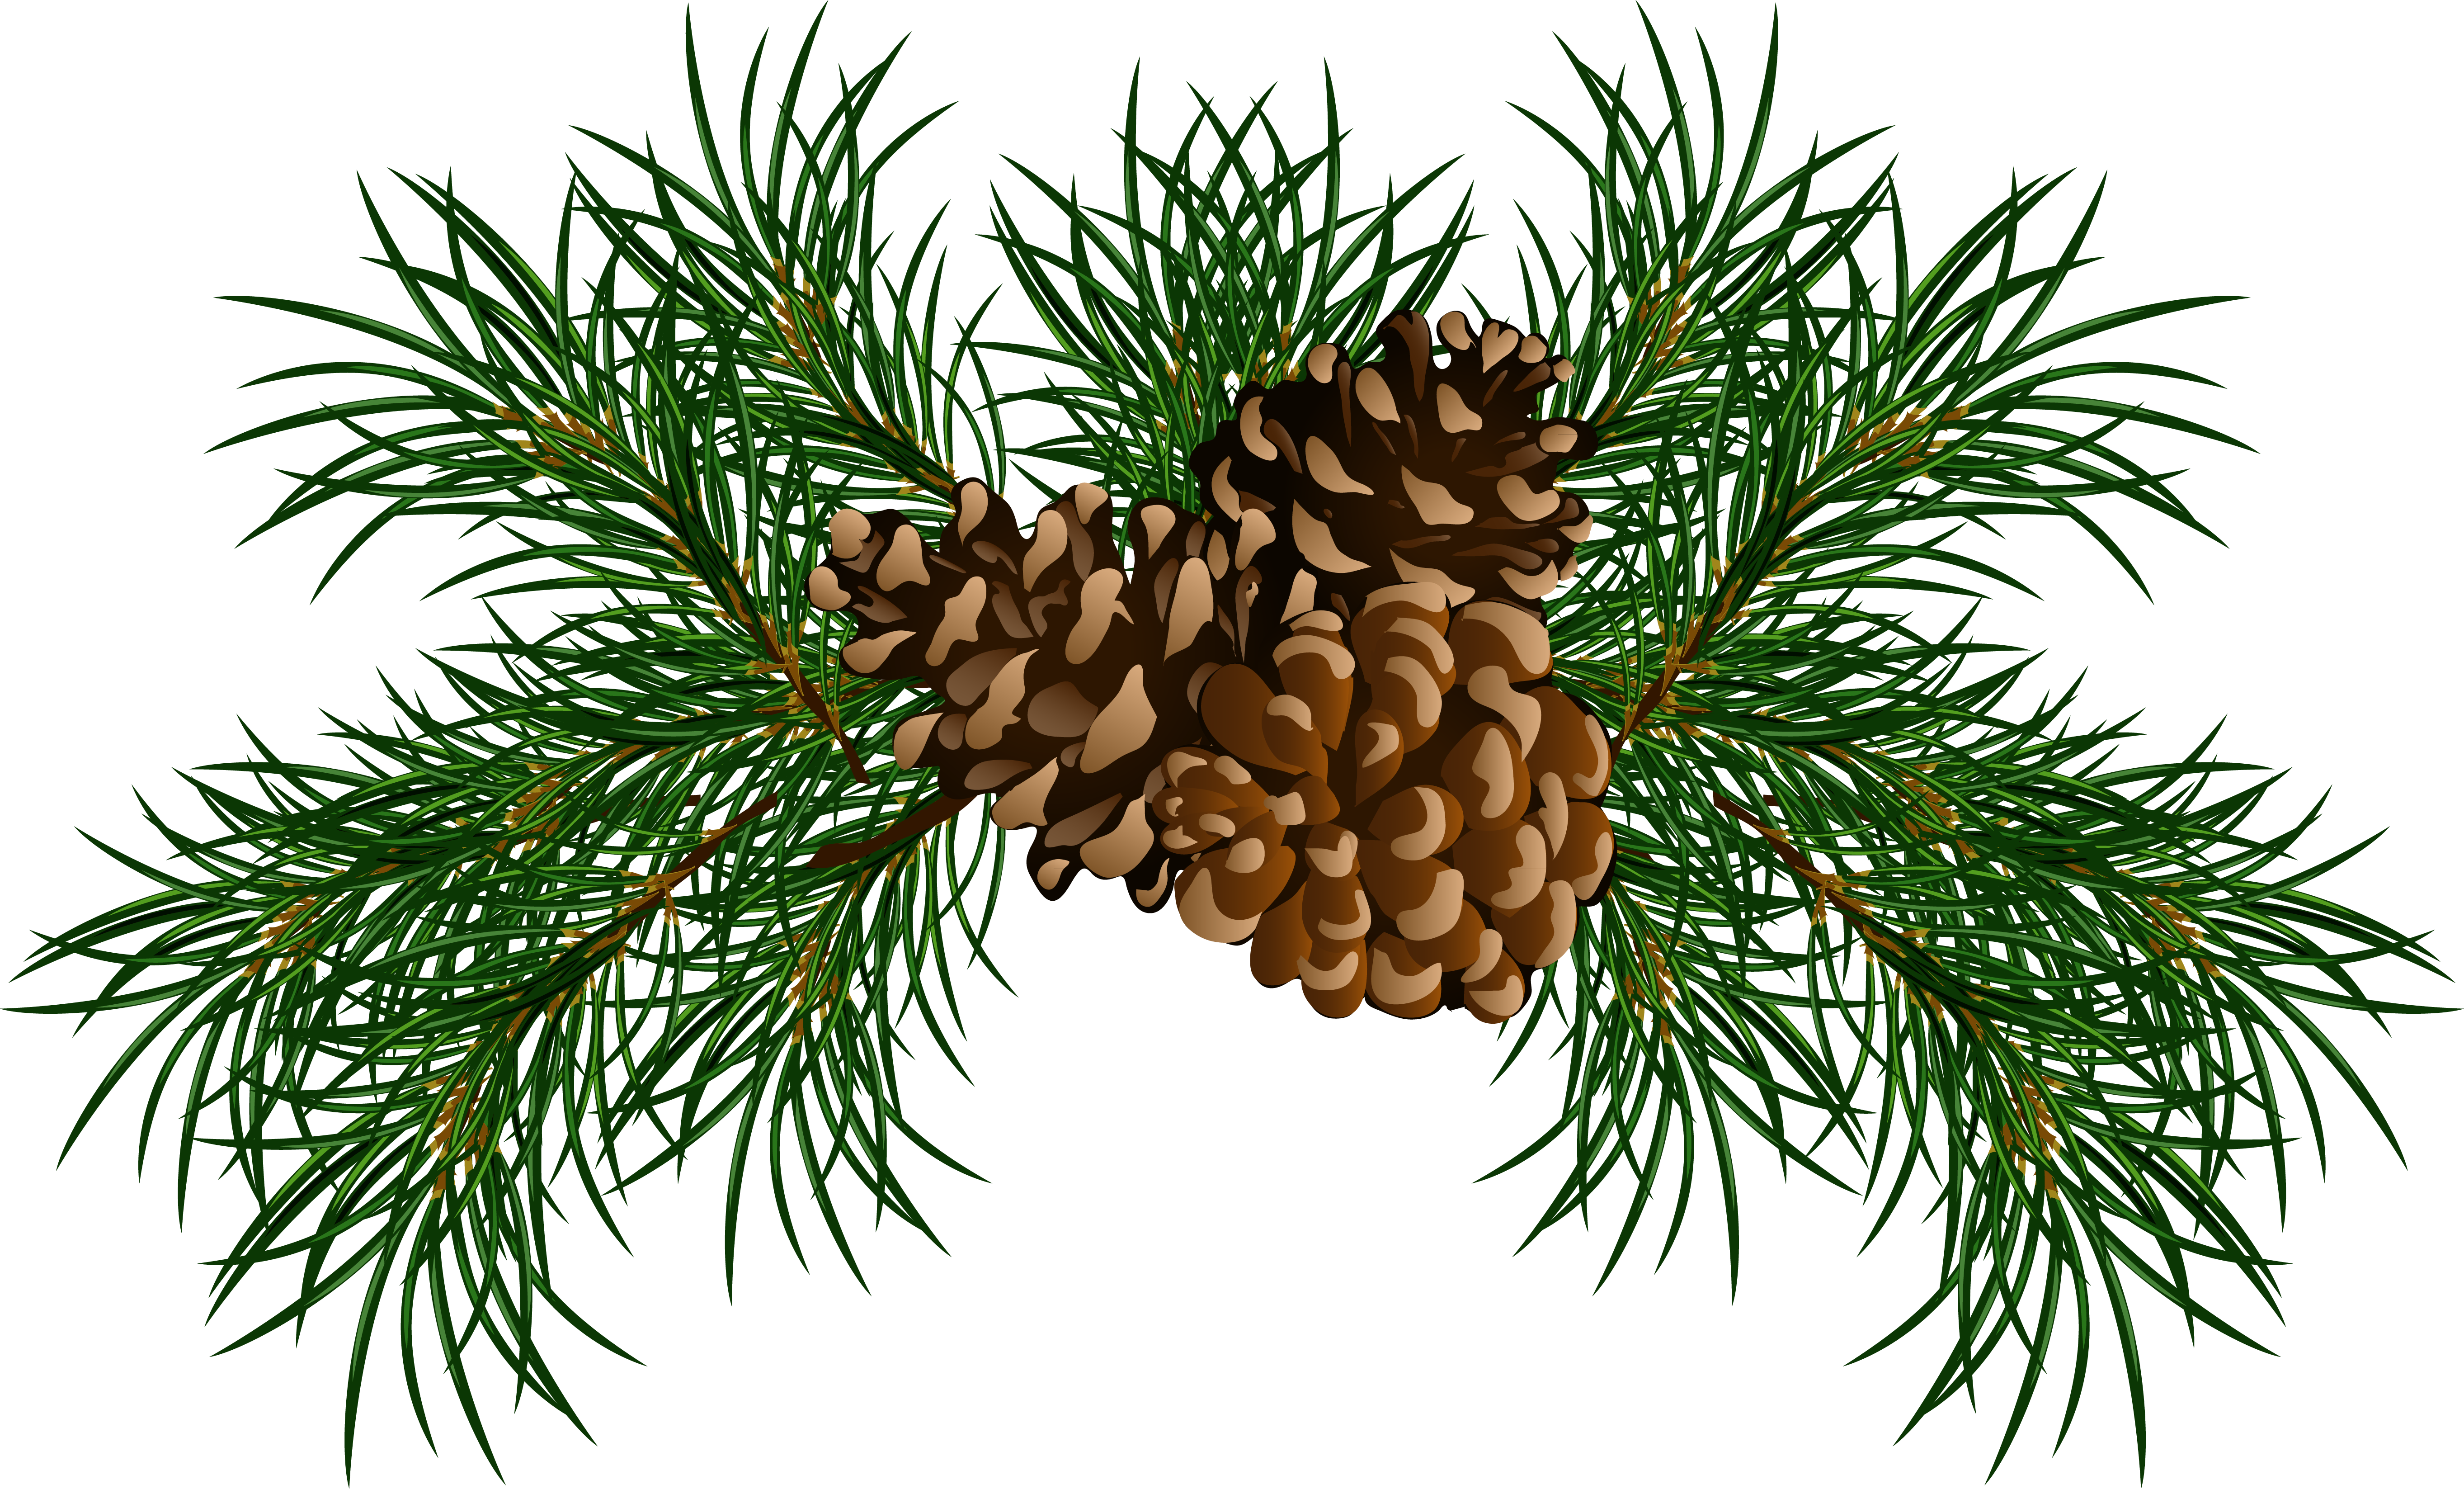 Loblolly pine tree branch clipart banner download Evergeen branches clipart png transparent background - ClipartFest banner download